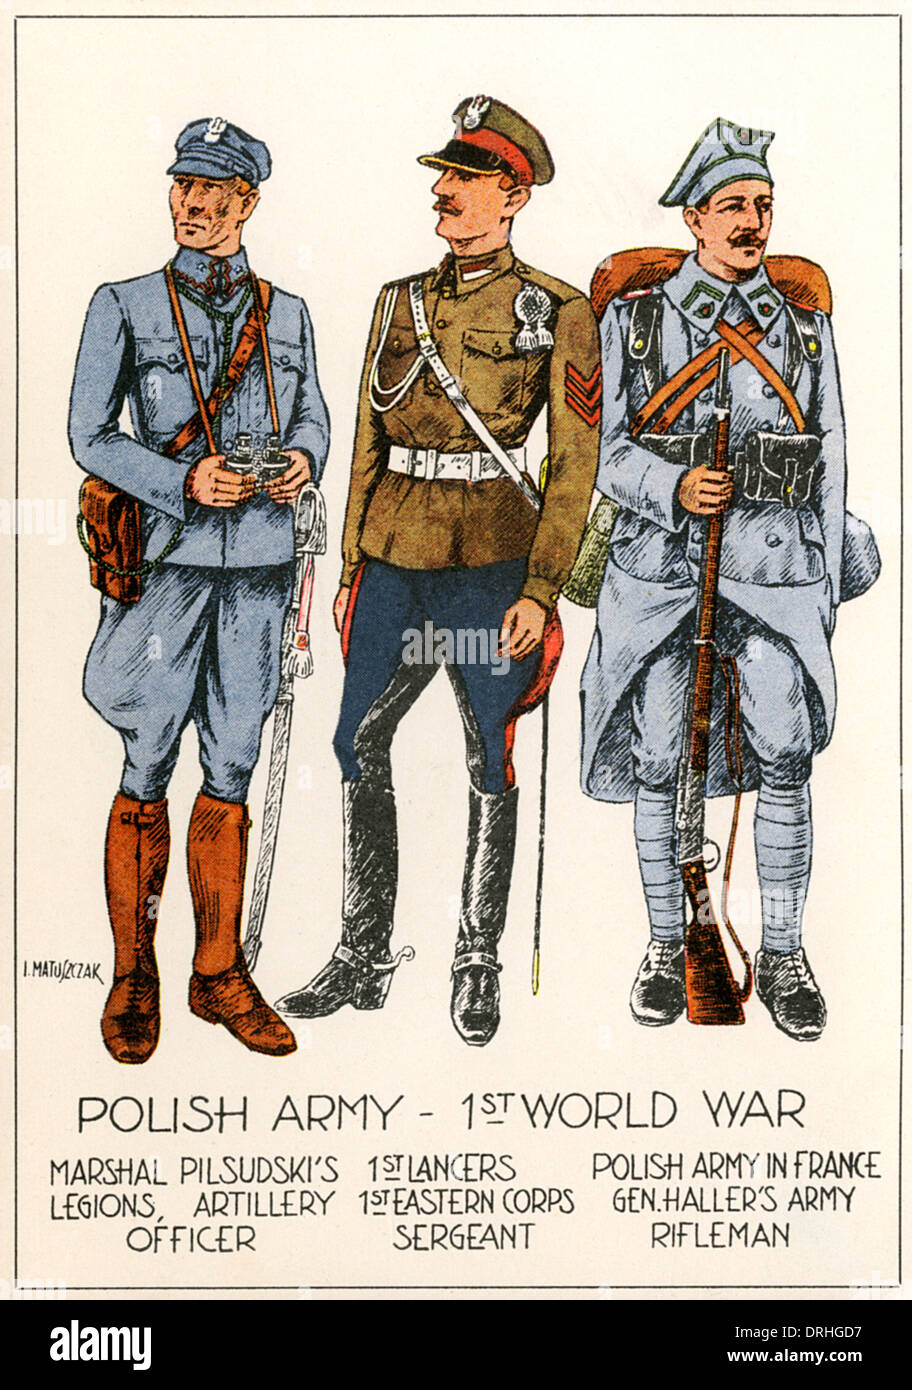 61d806c82f3 Polish Soldiers Stock Photos   Polish Soldiers Stock Images - Alamy